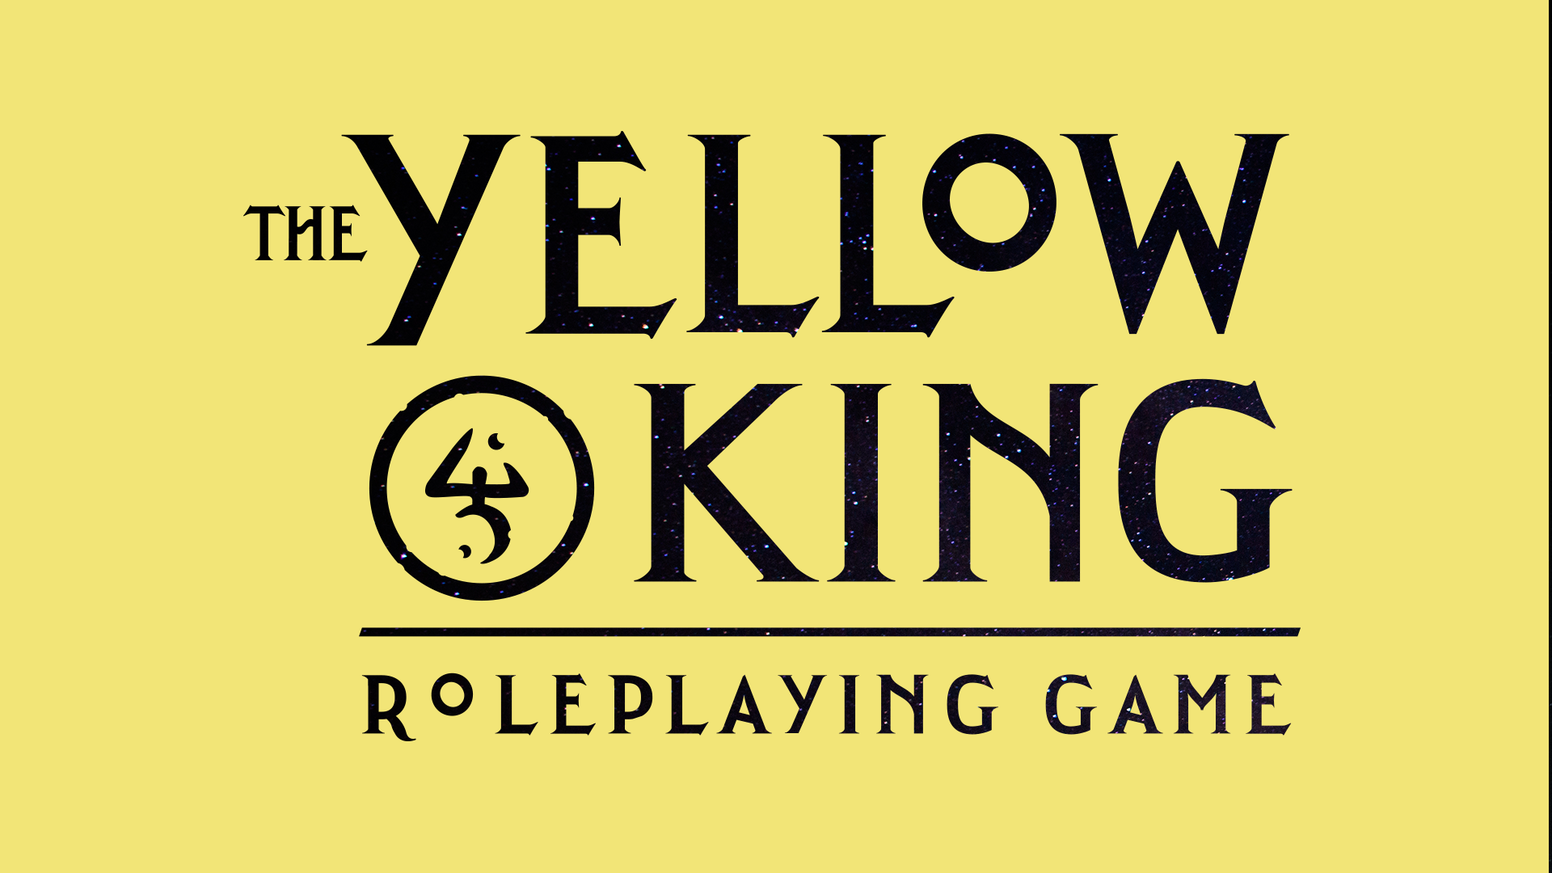 Written and designed by GUMSHOE master Robin D. Laws, YKRPG takes you on a brain-bending spiral through multiple selves and timelines.